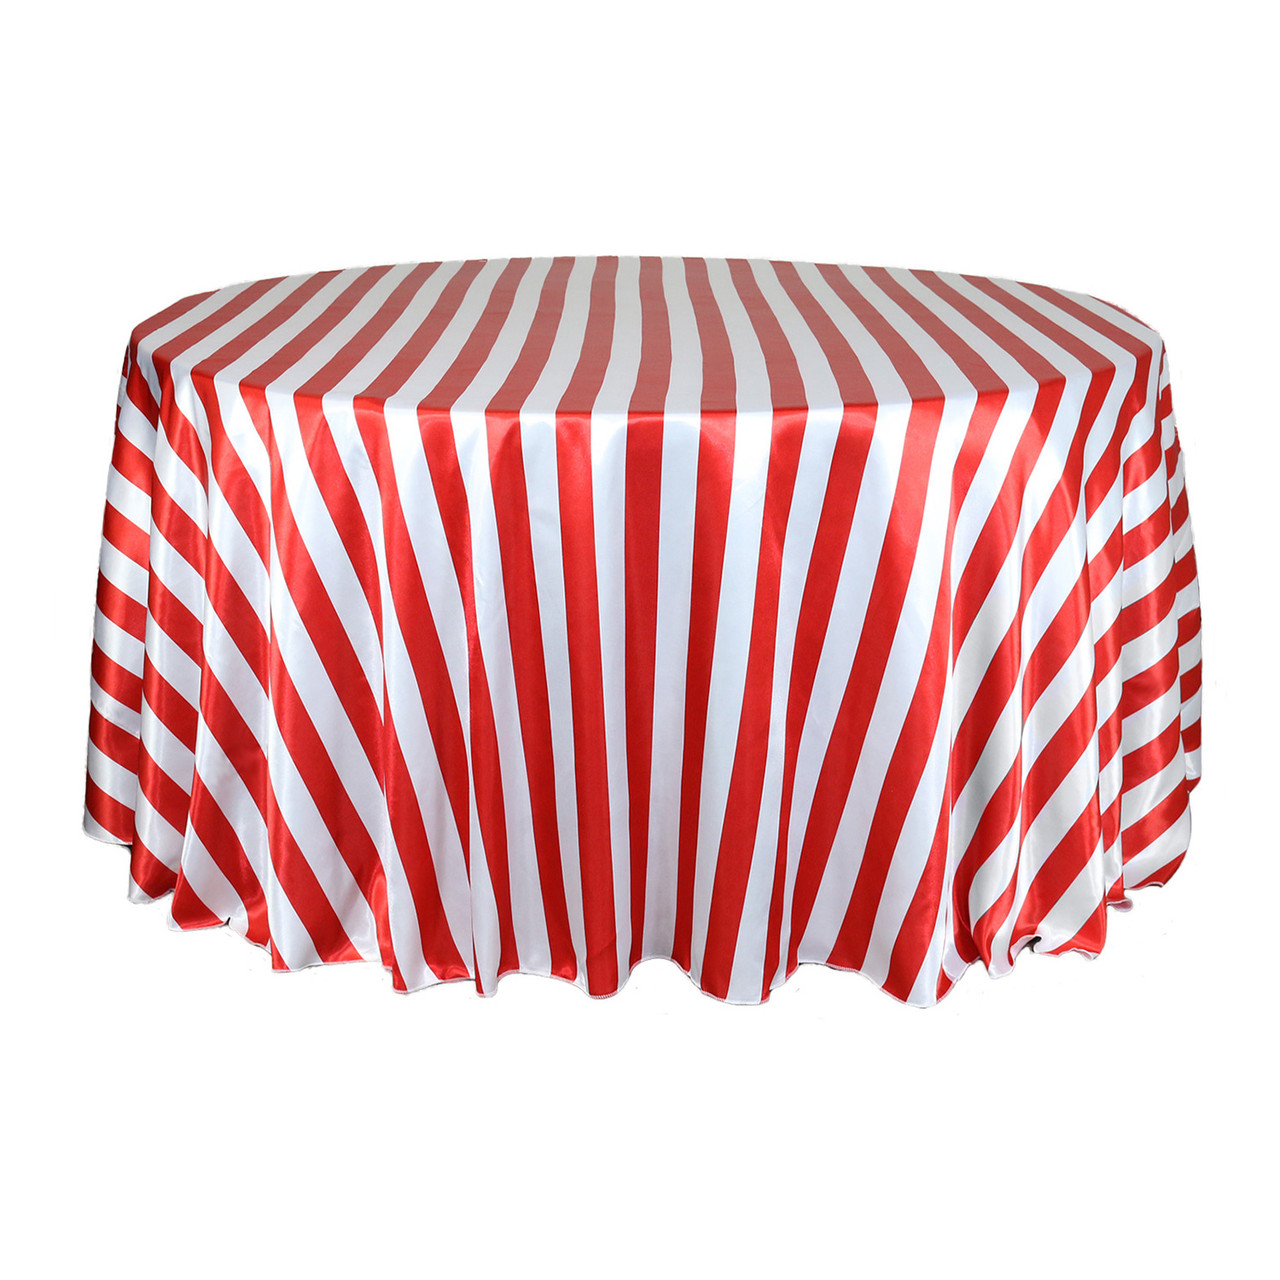 120 Inch Round Satin Tablecloth Redwhite Striped Your Chair